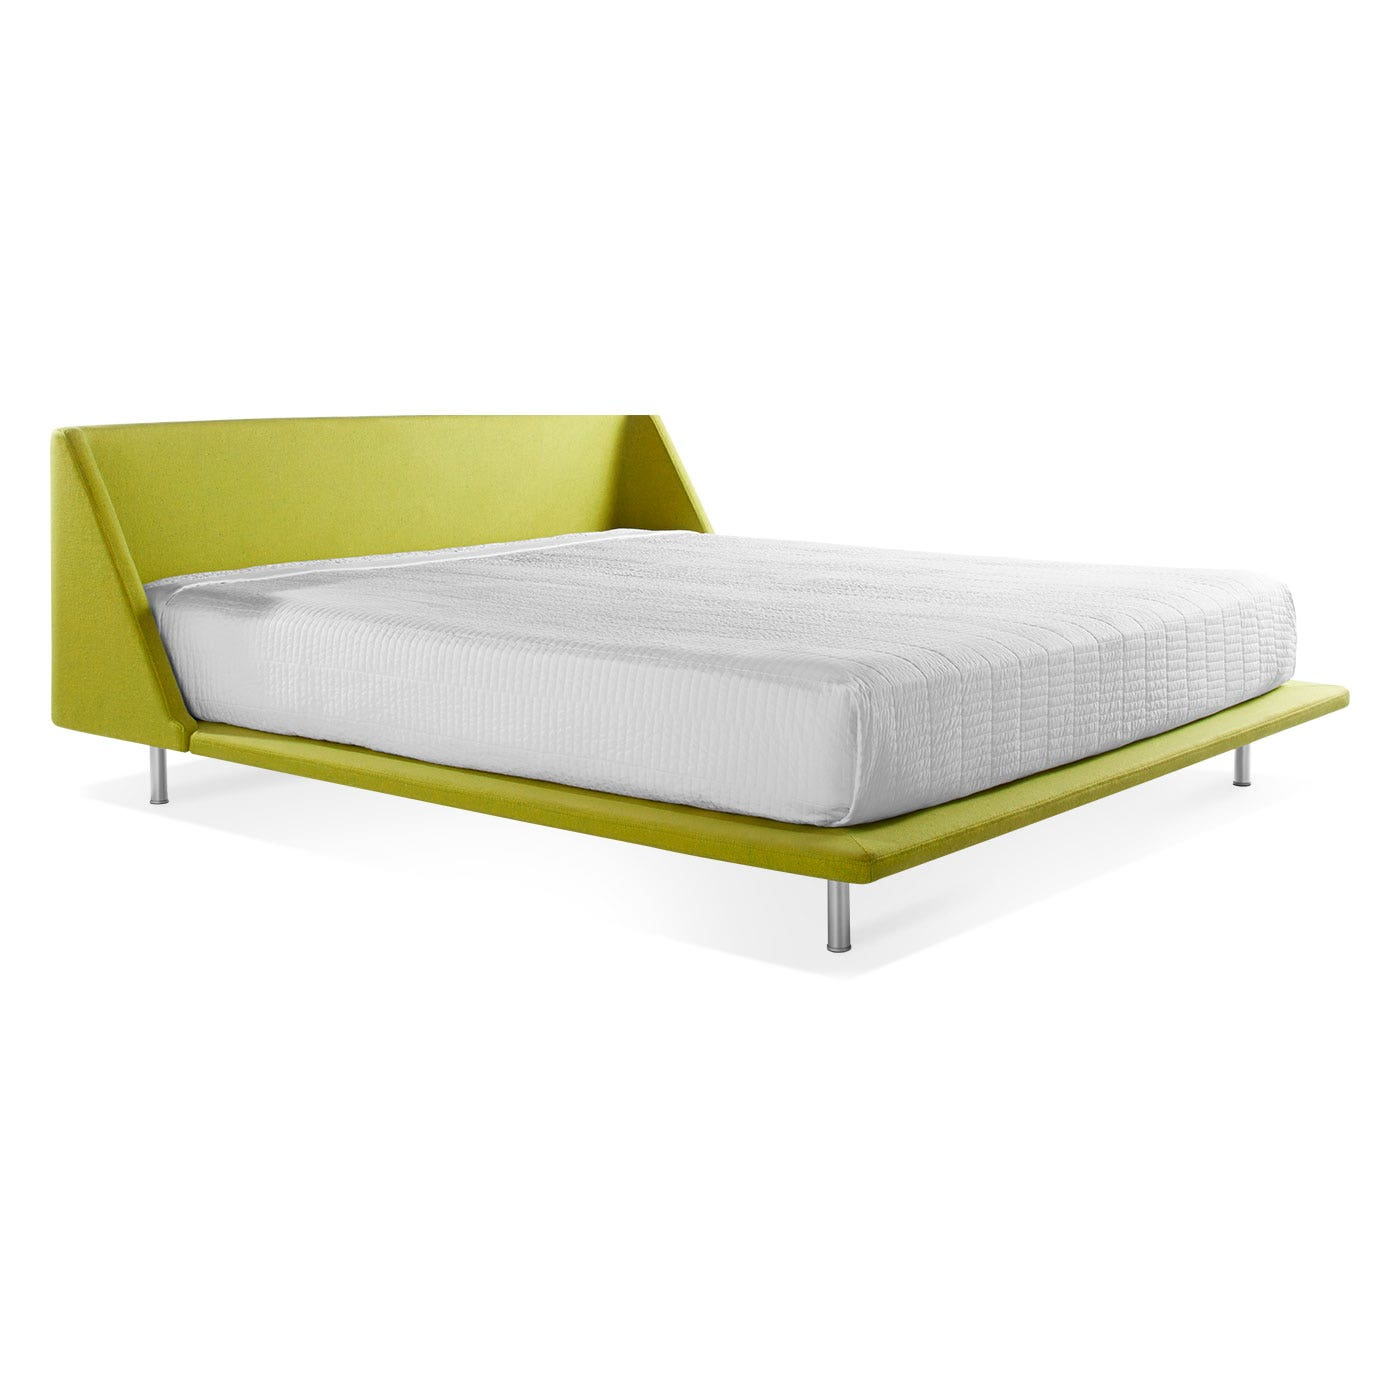 Nook King Bed Guacamole